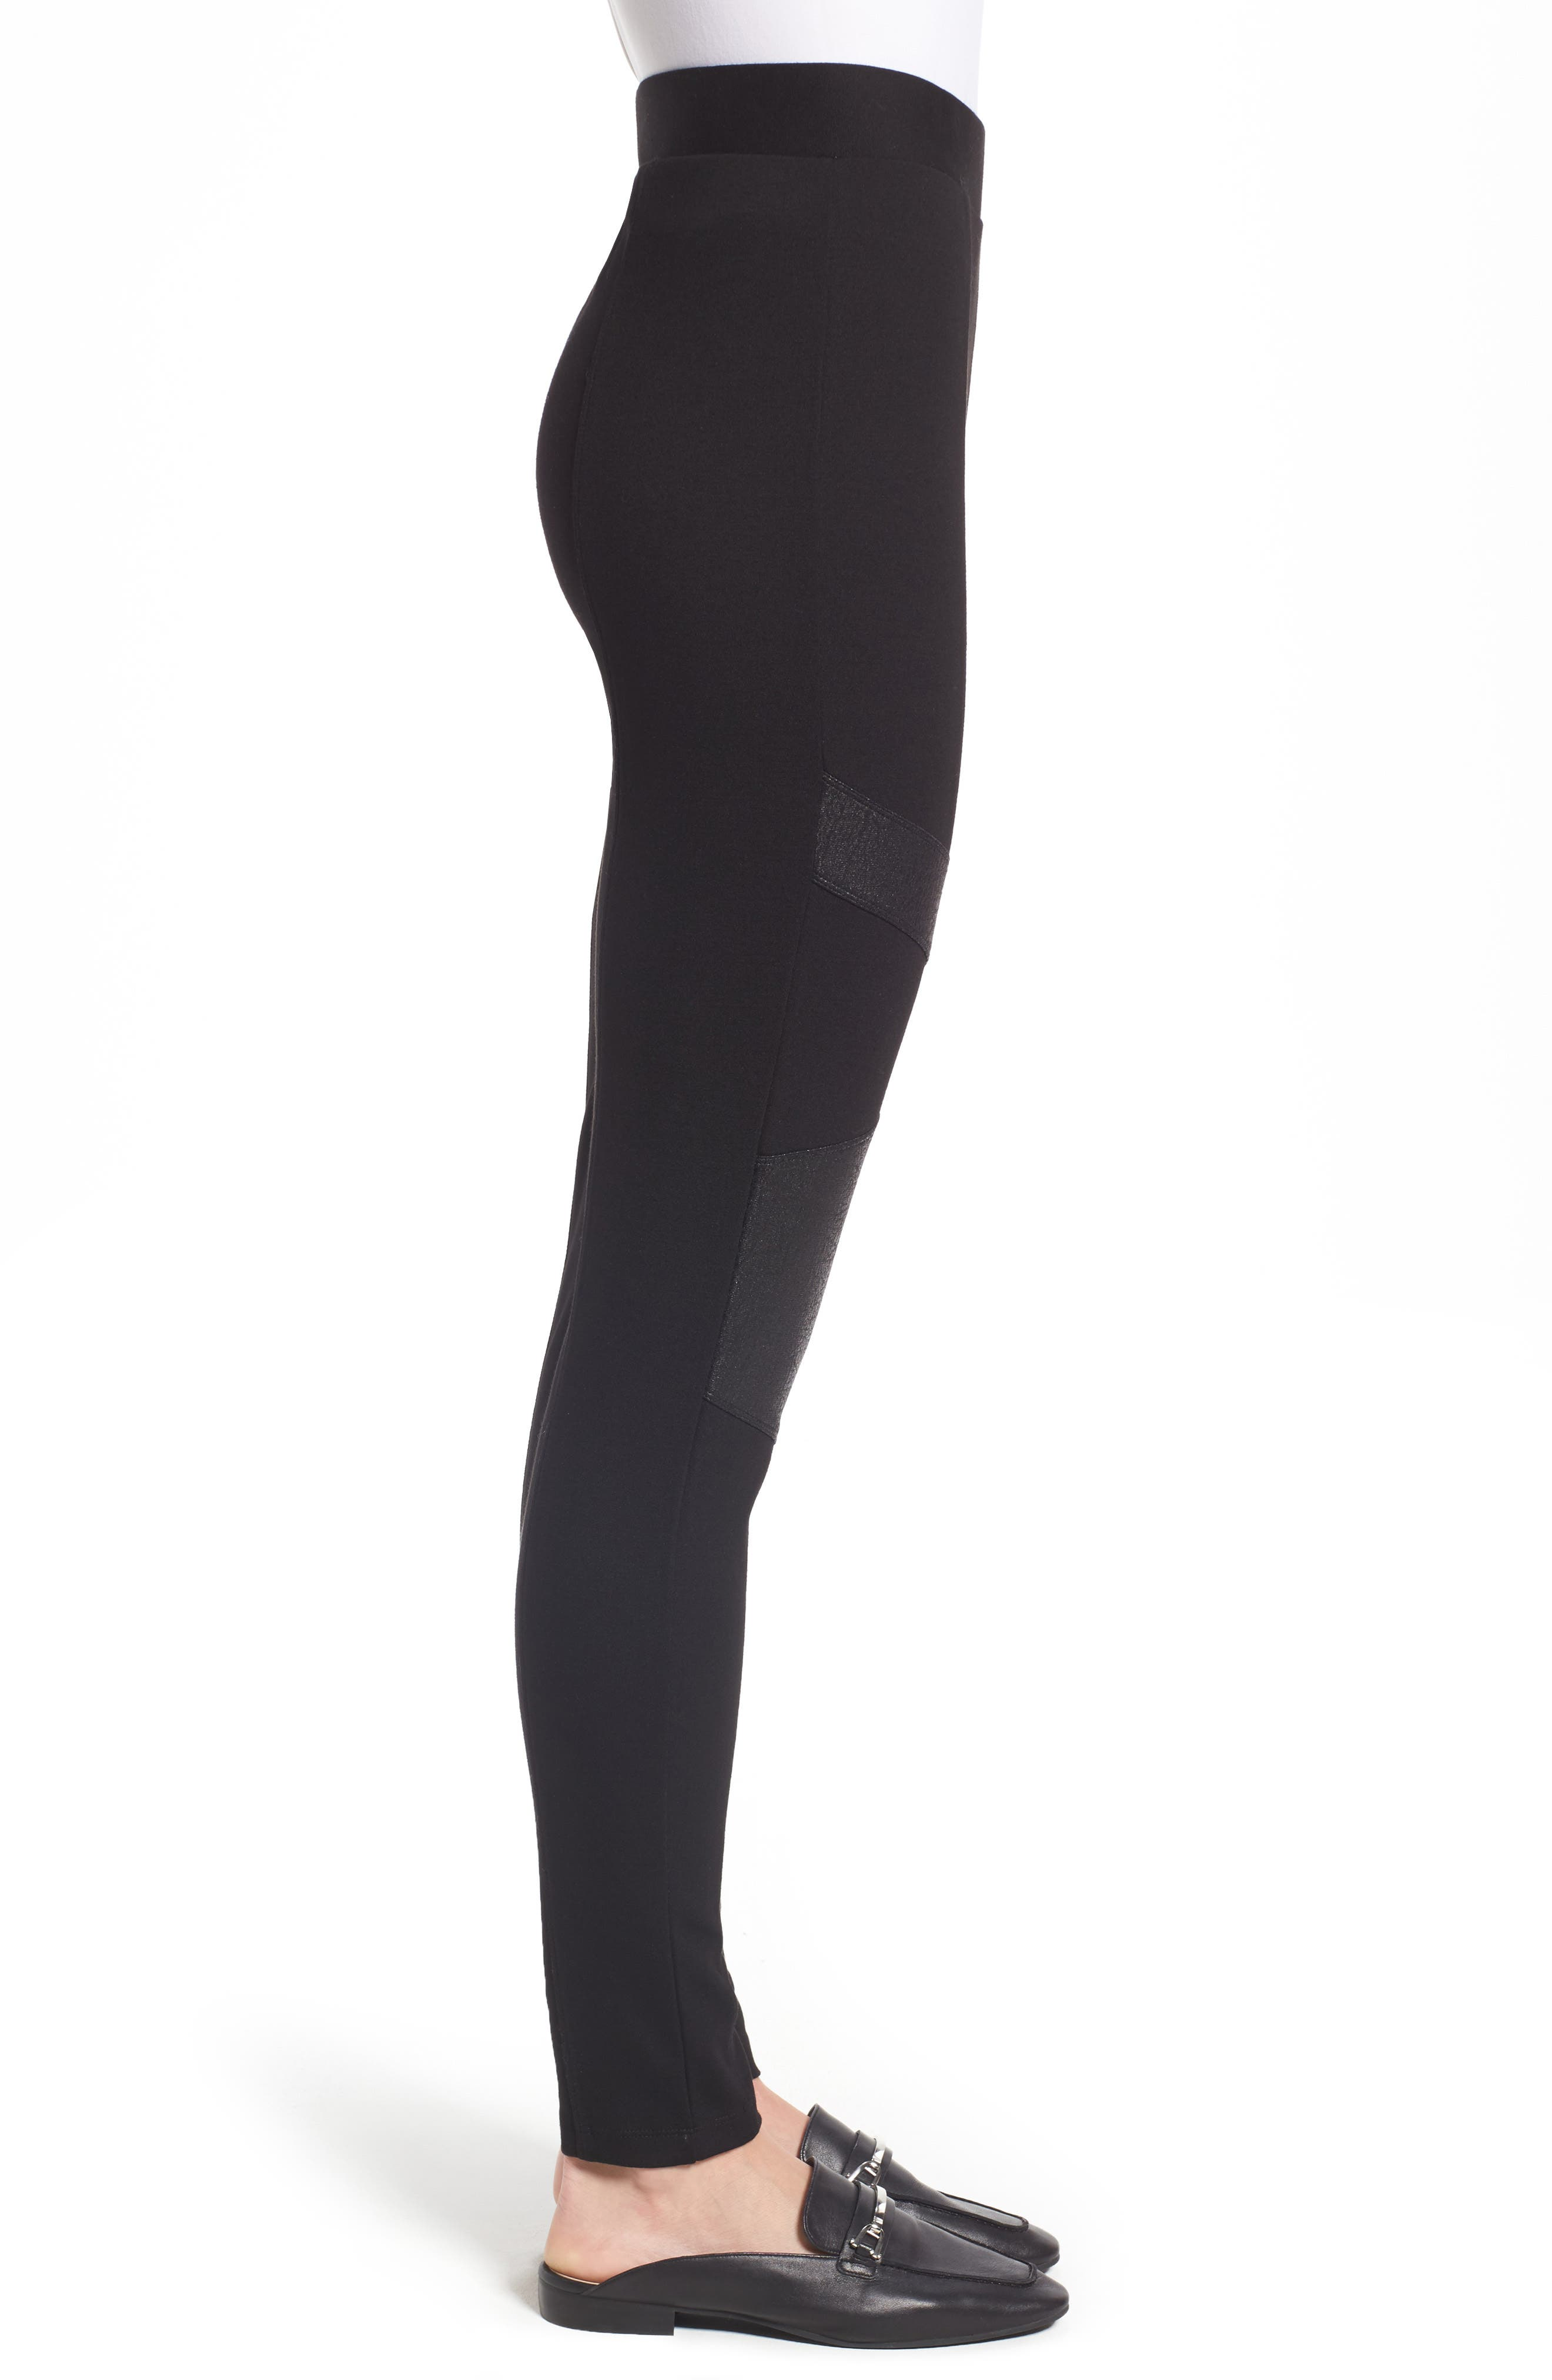 Alternate Image 3  - Two by Vince Camuto Lacquer Inset Moto Leggings (Regular & Petite)